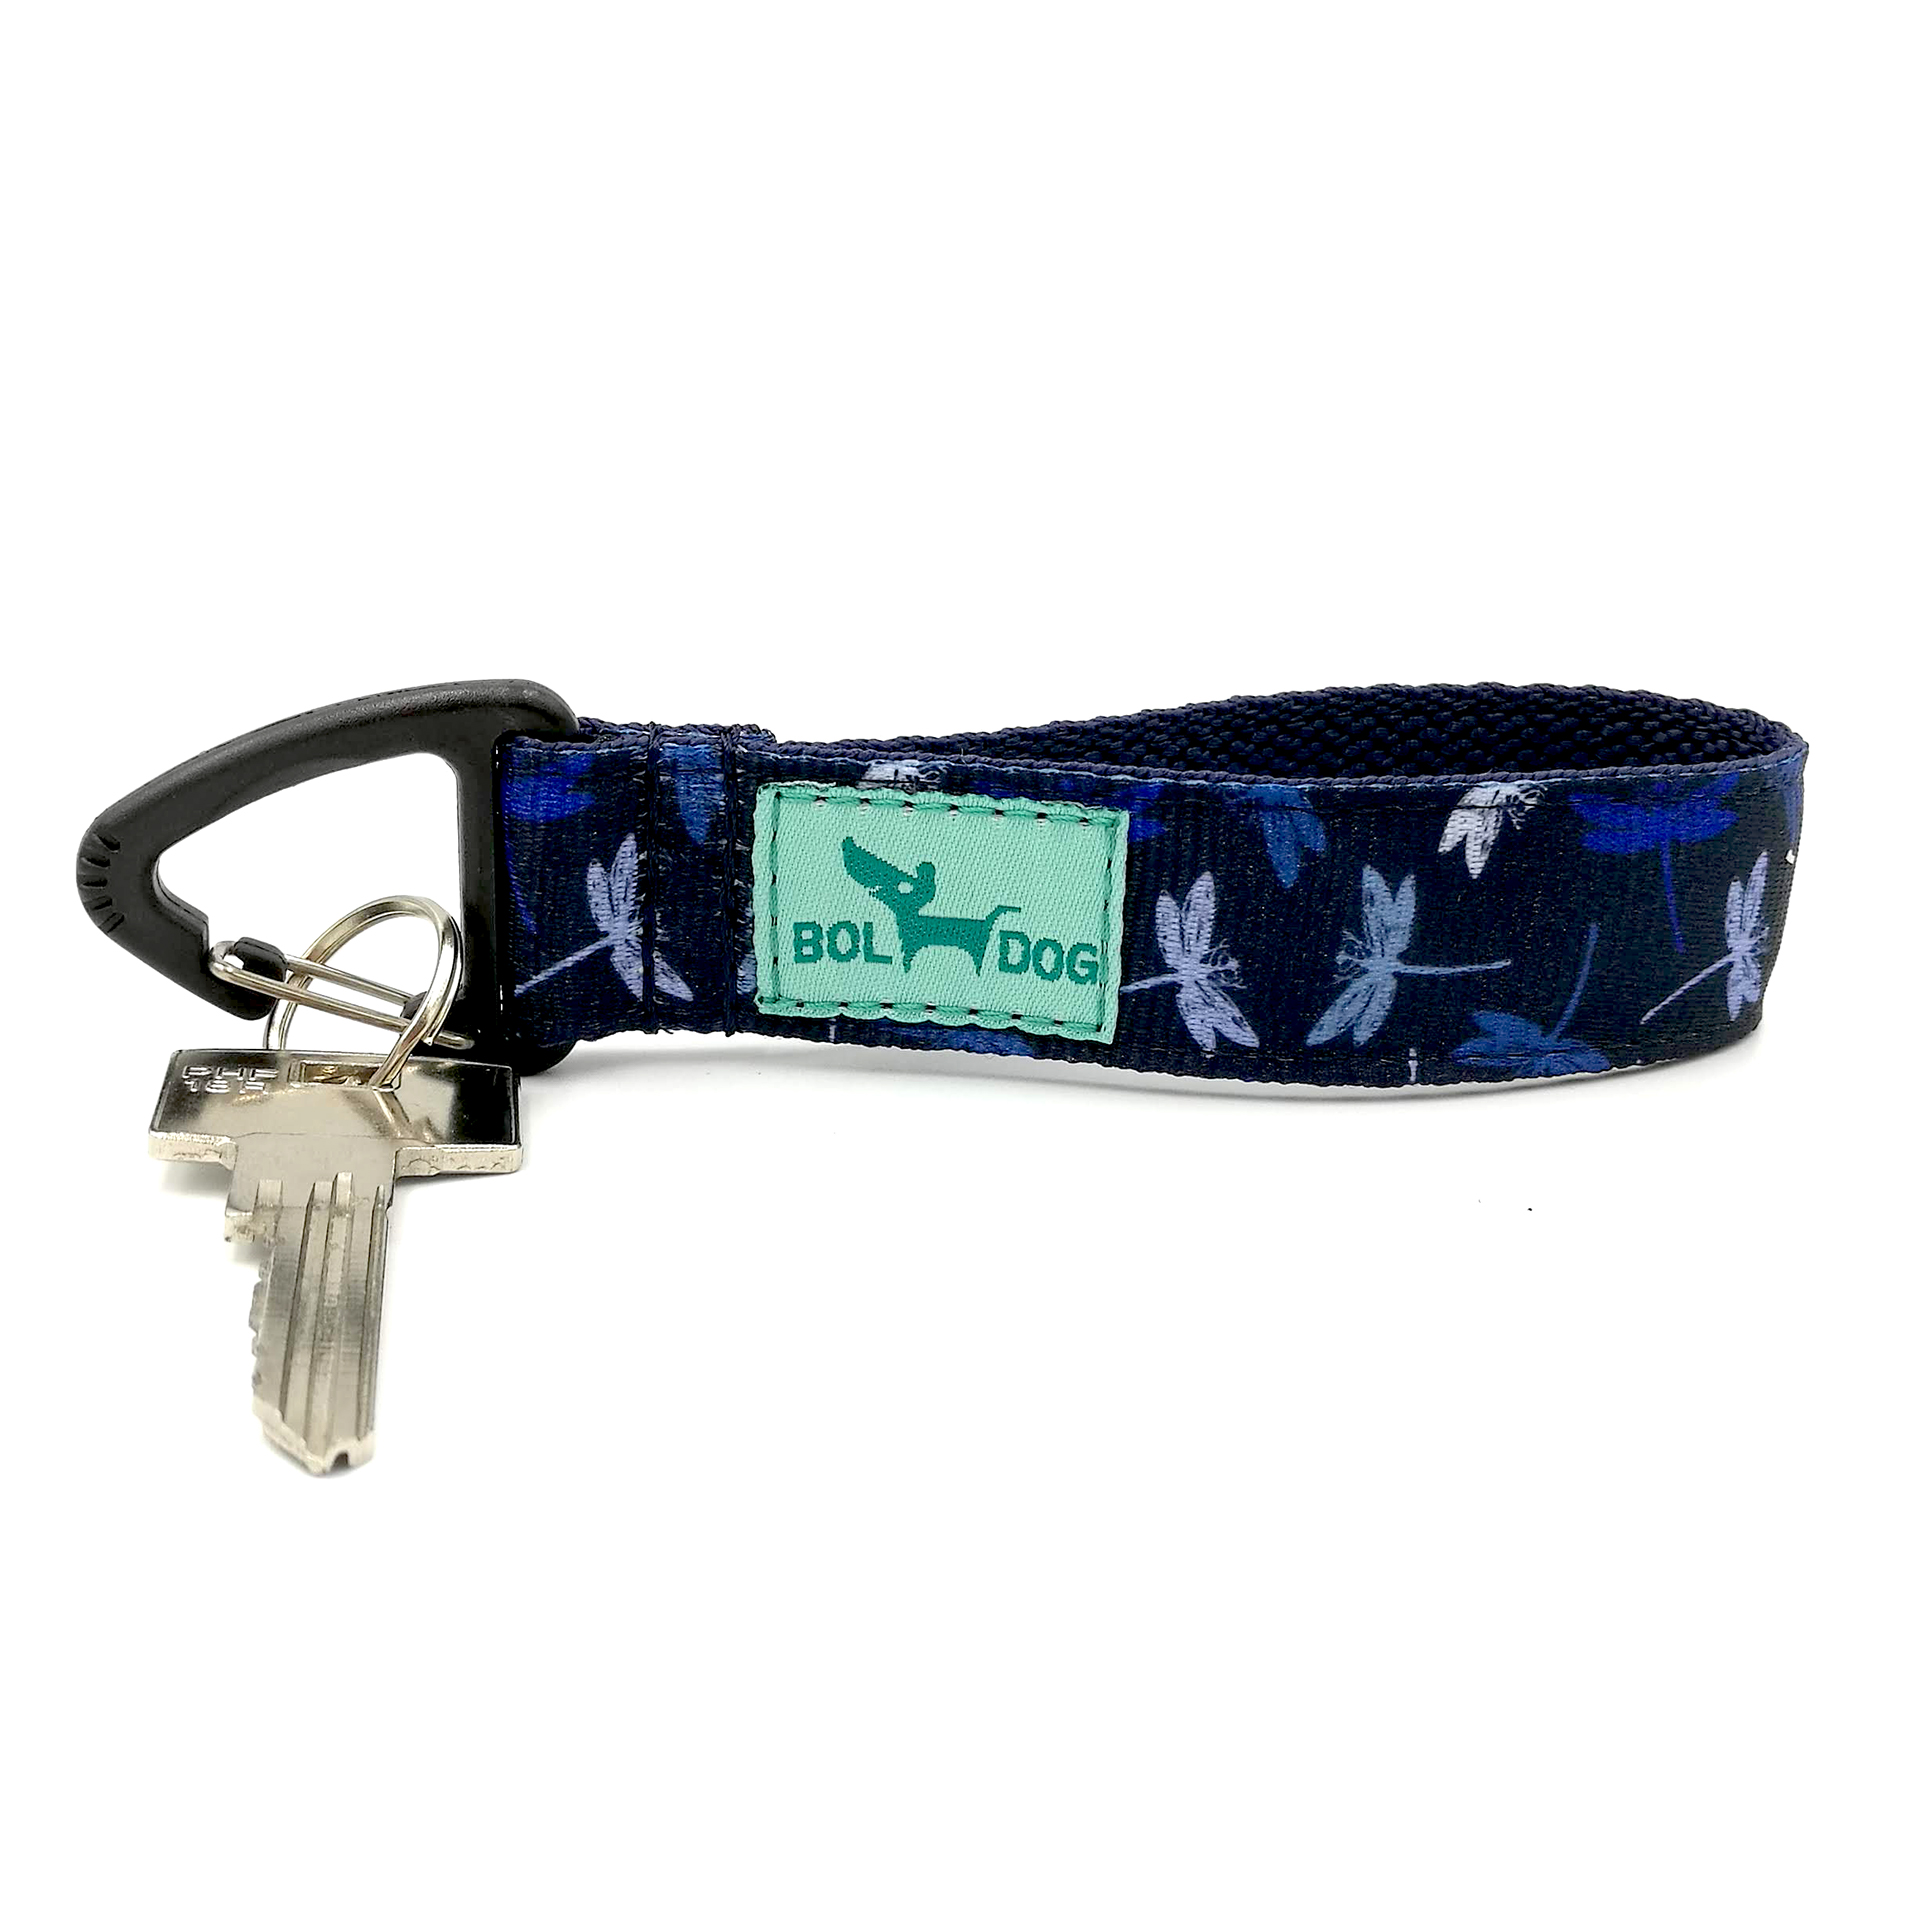 Dragonfly key holder